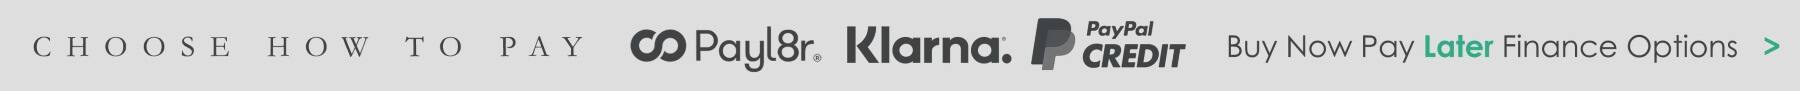 Payl8r Klarna PayPal Finance